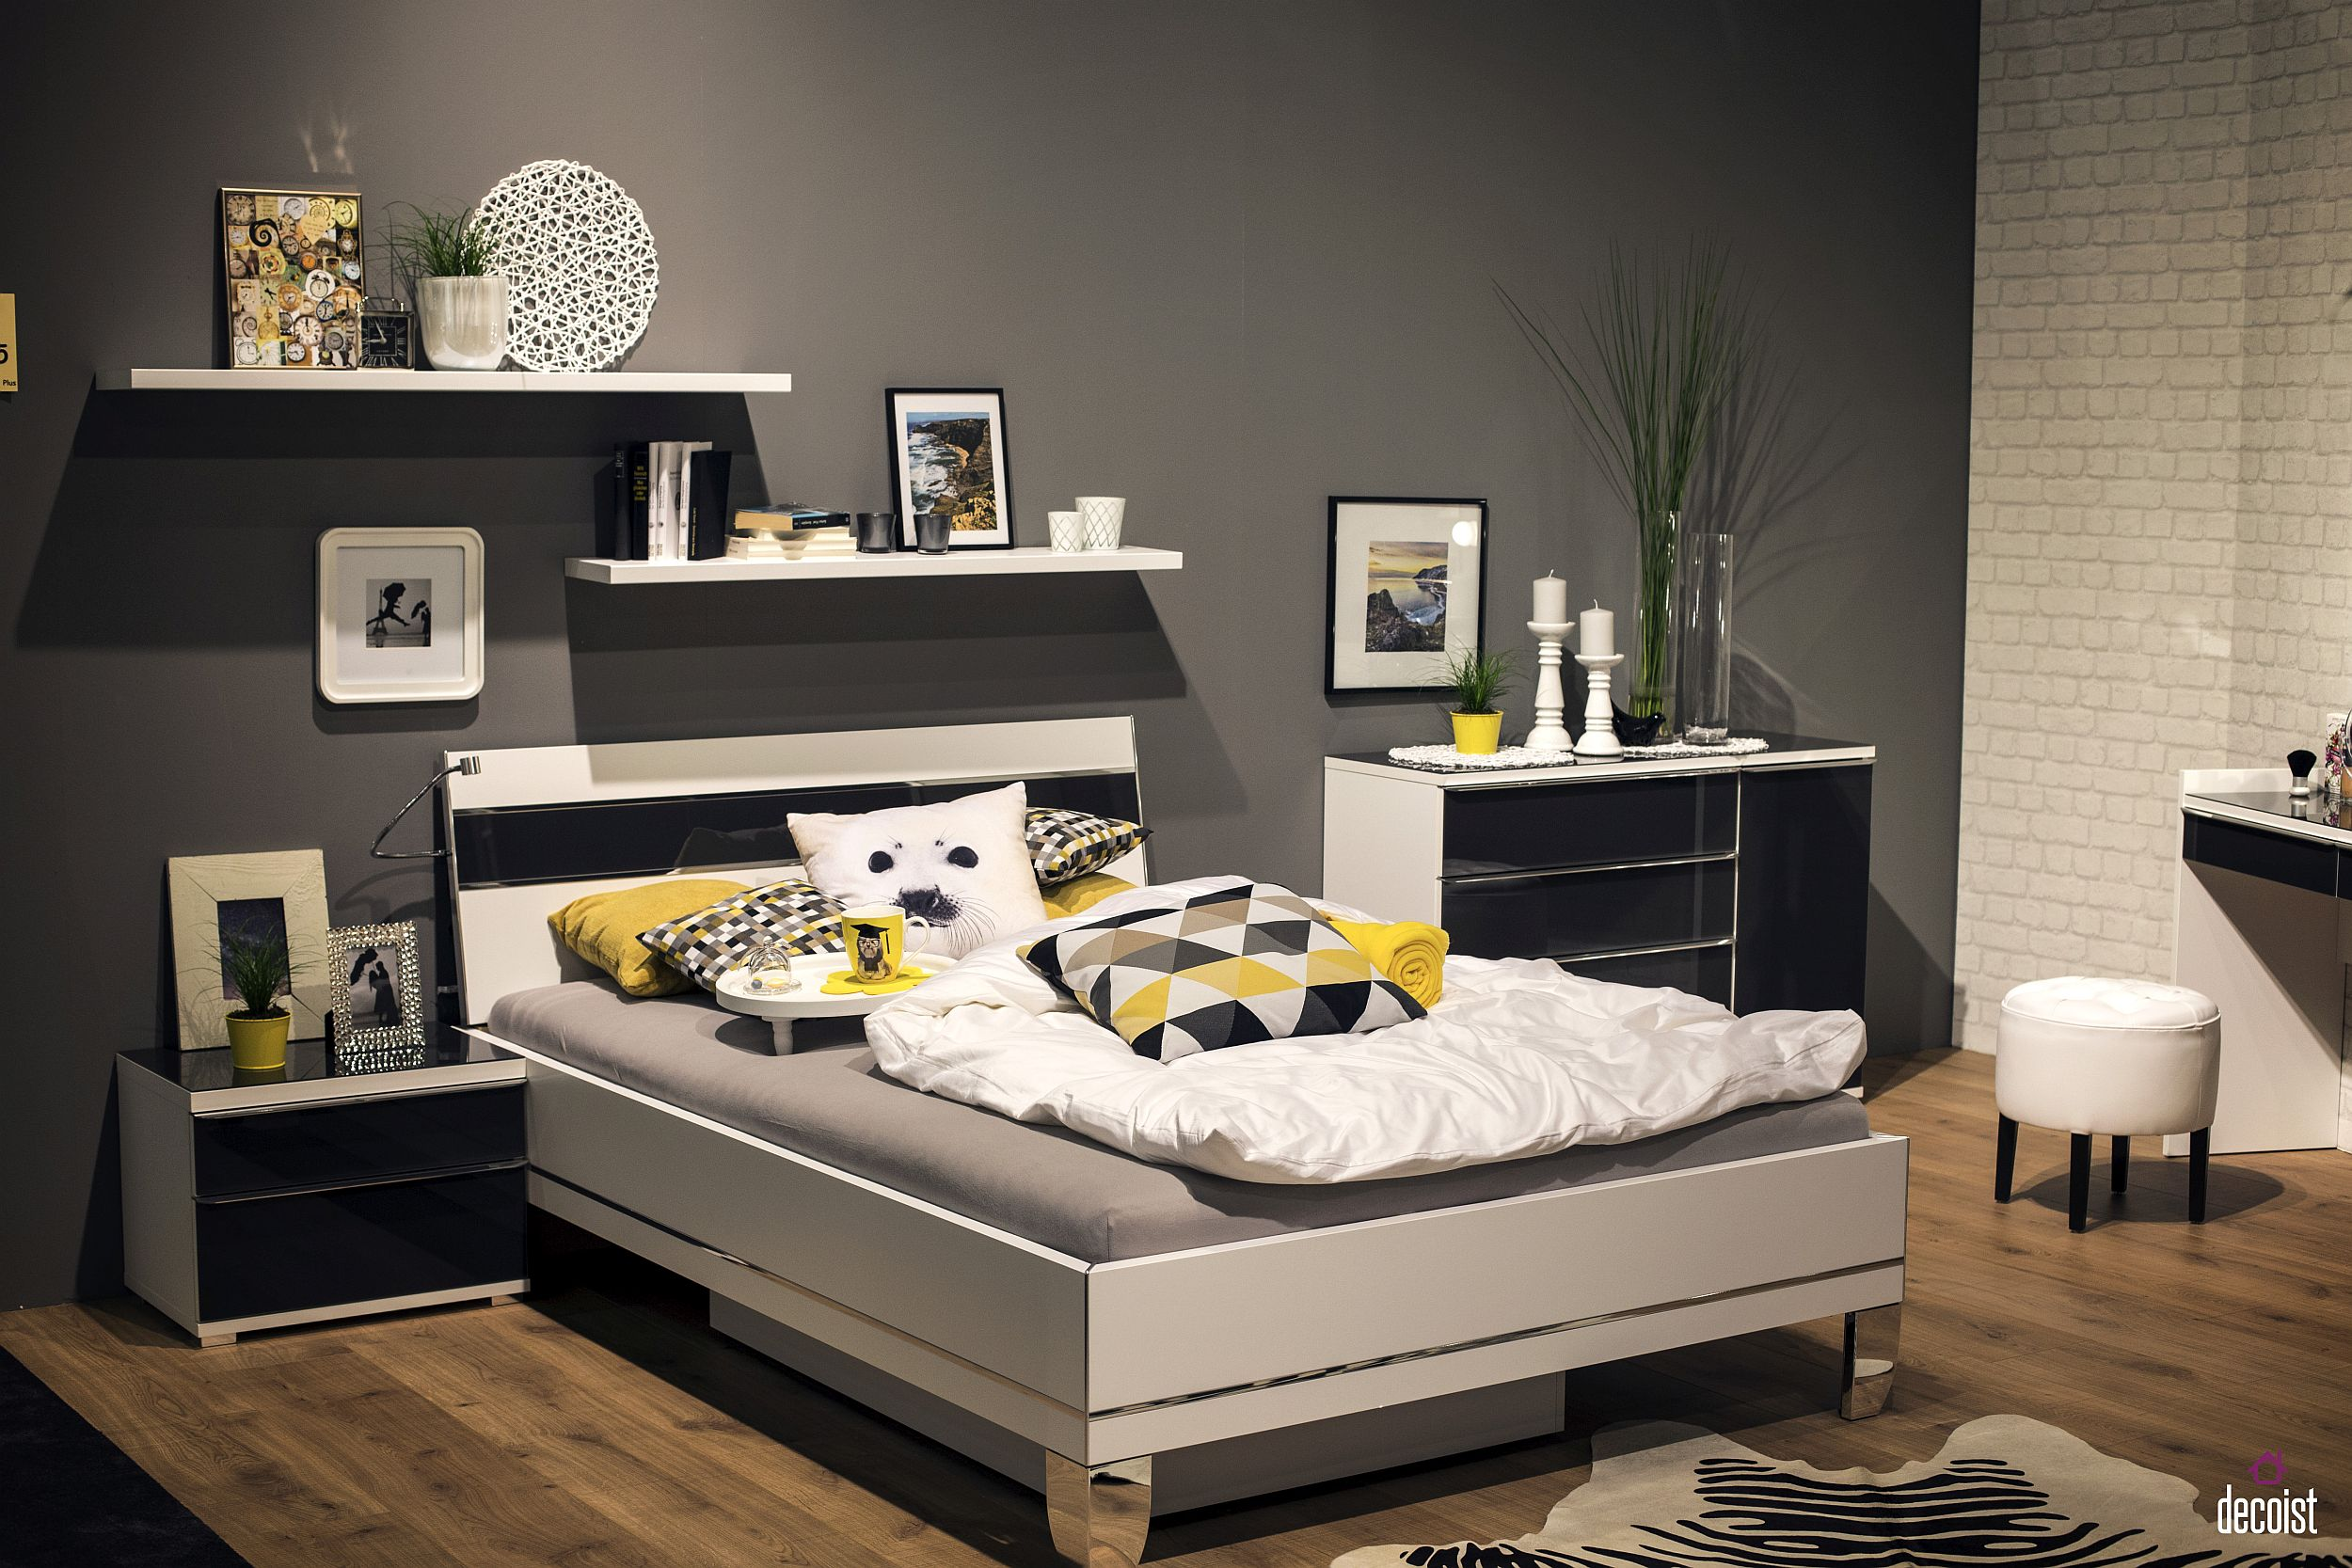 Polished tween and teen bedroom that can easily evolve along with them over time